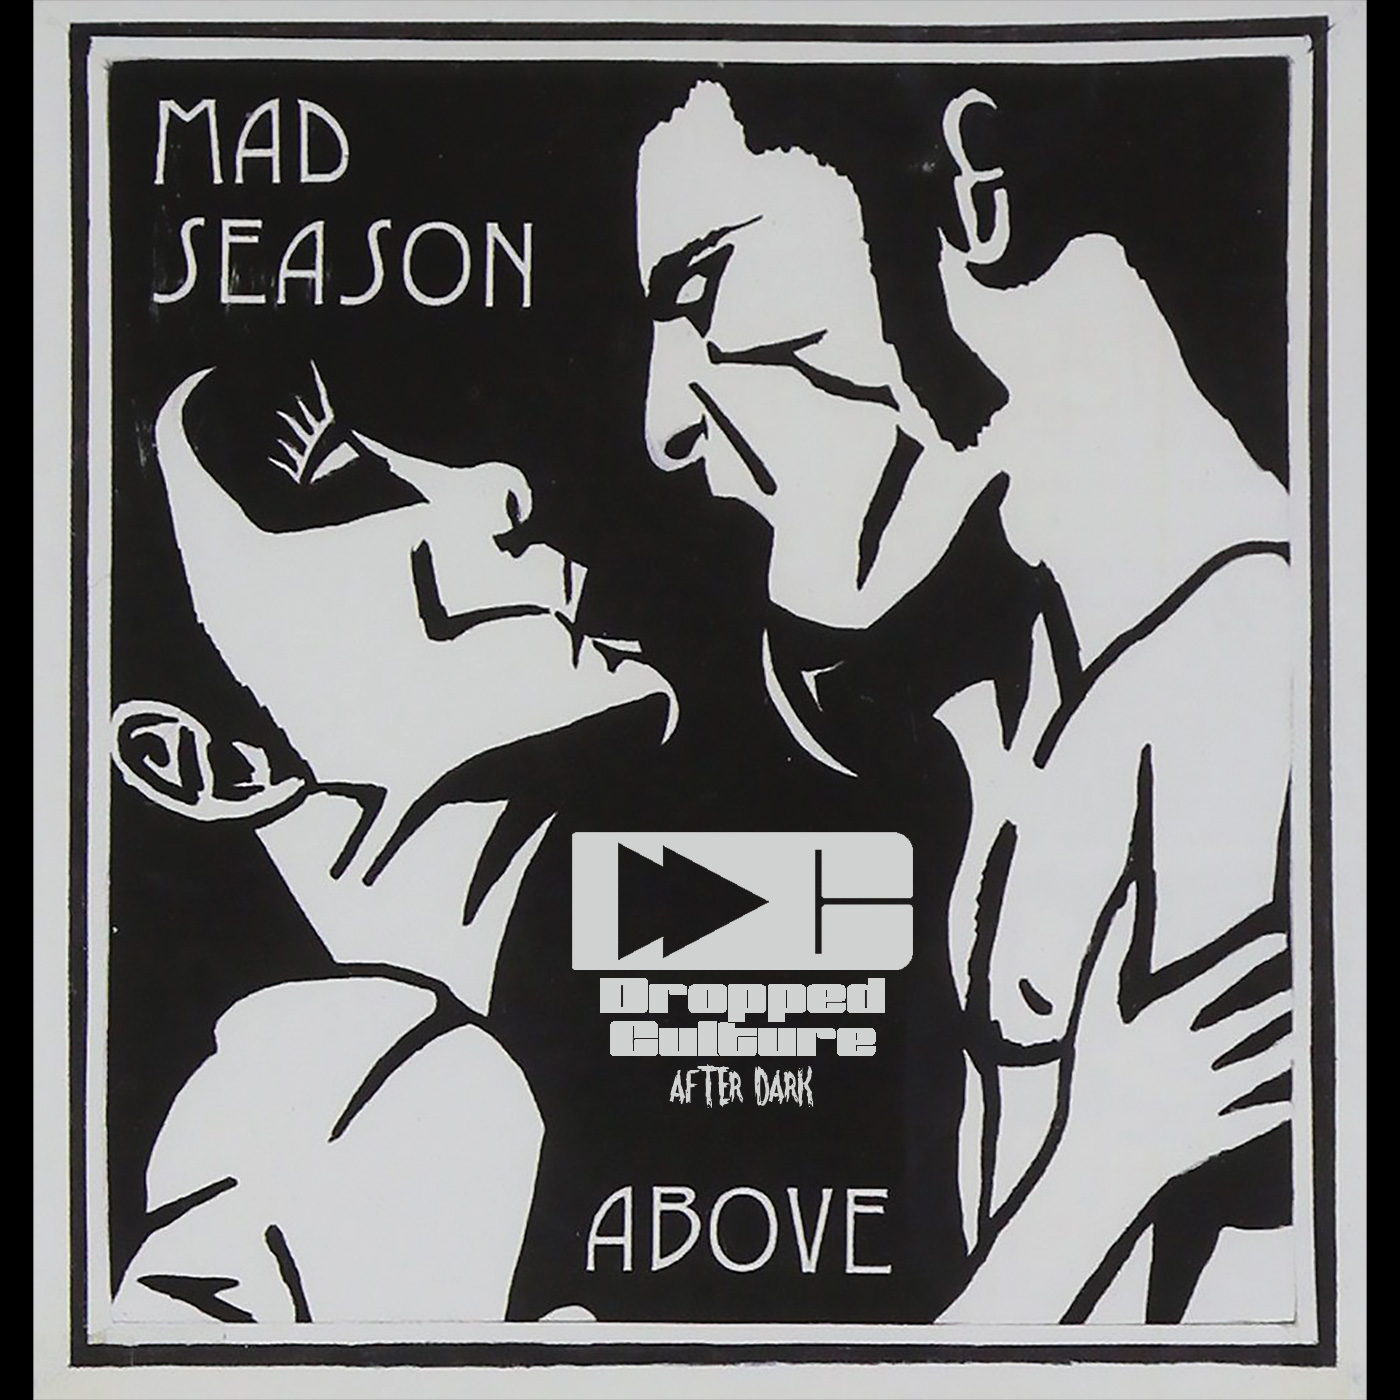 Dropped Culture After Dark Mad Season